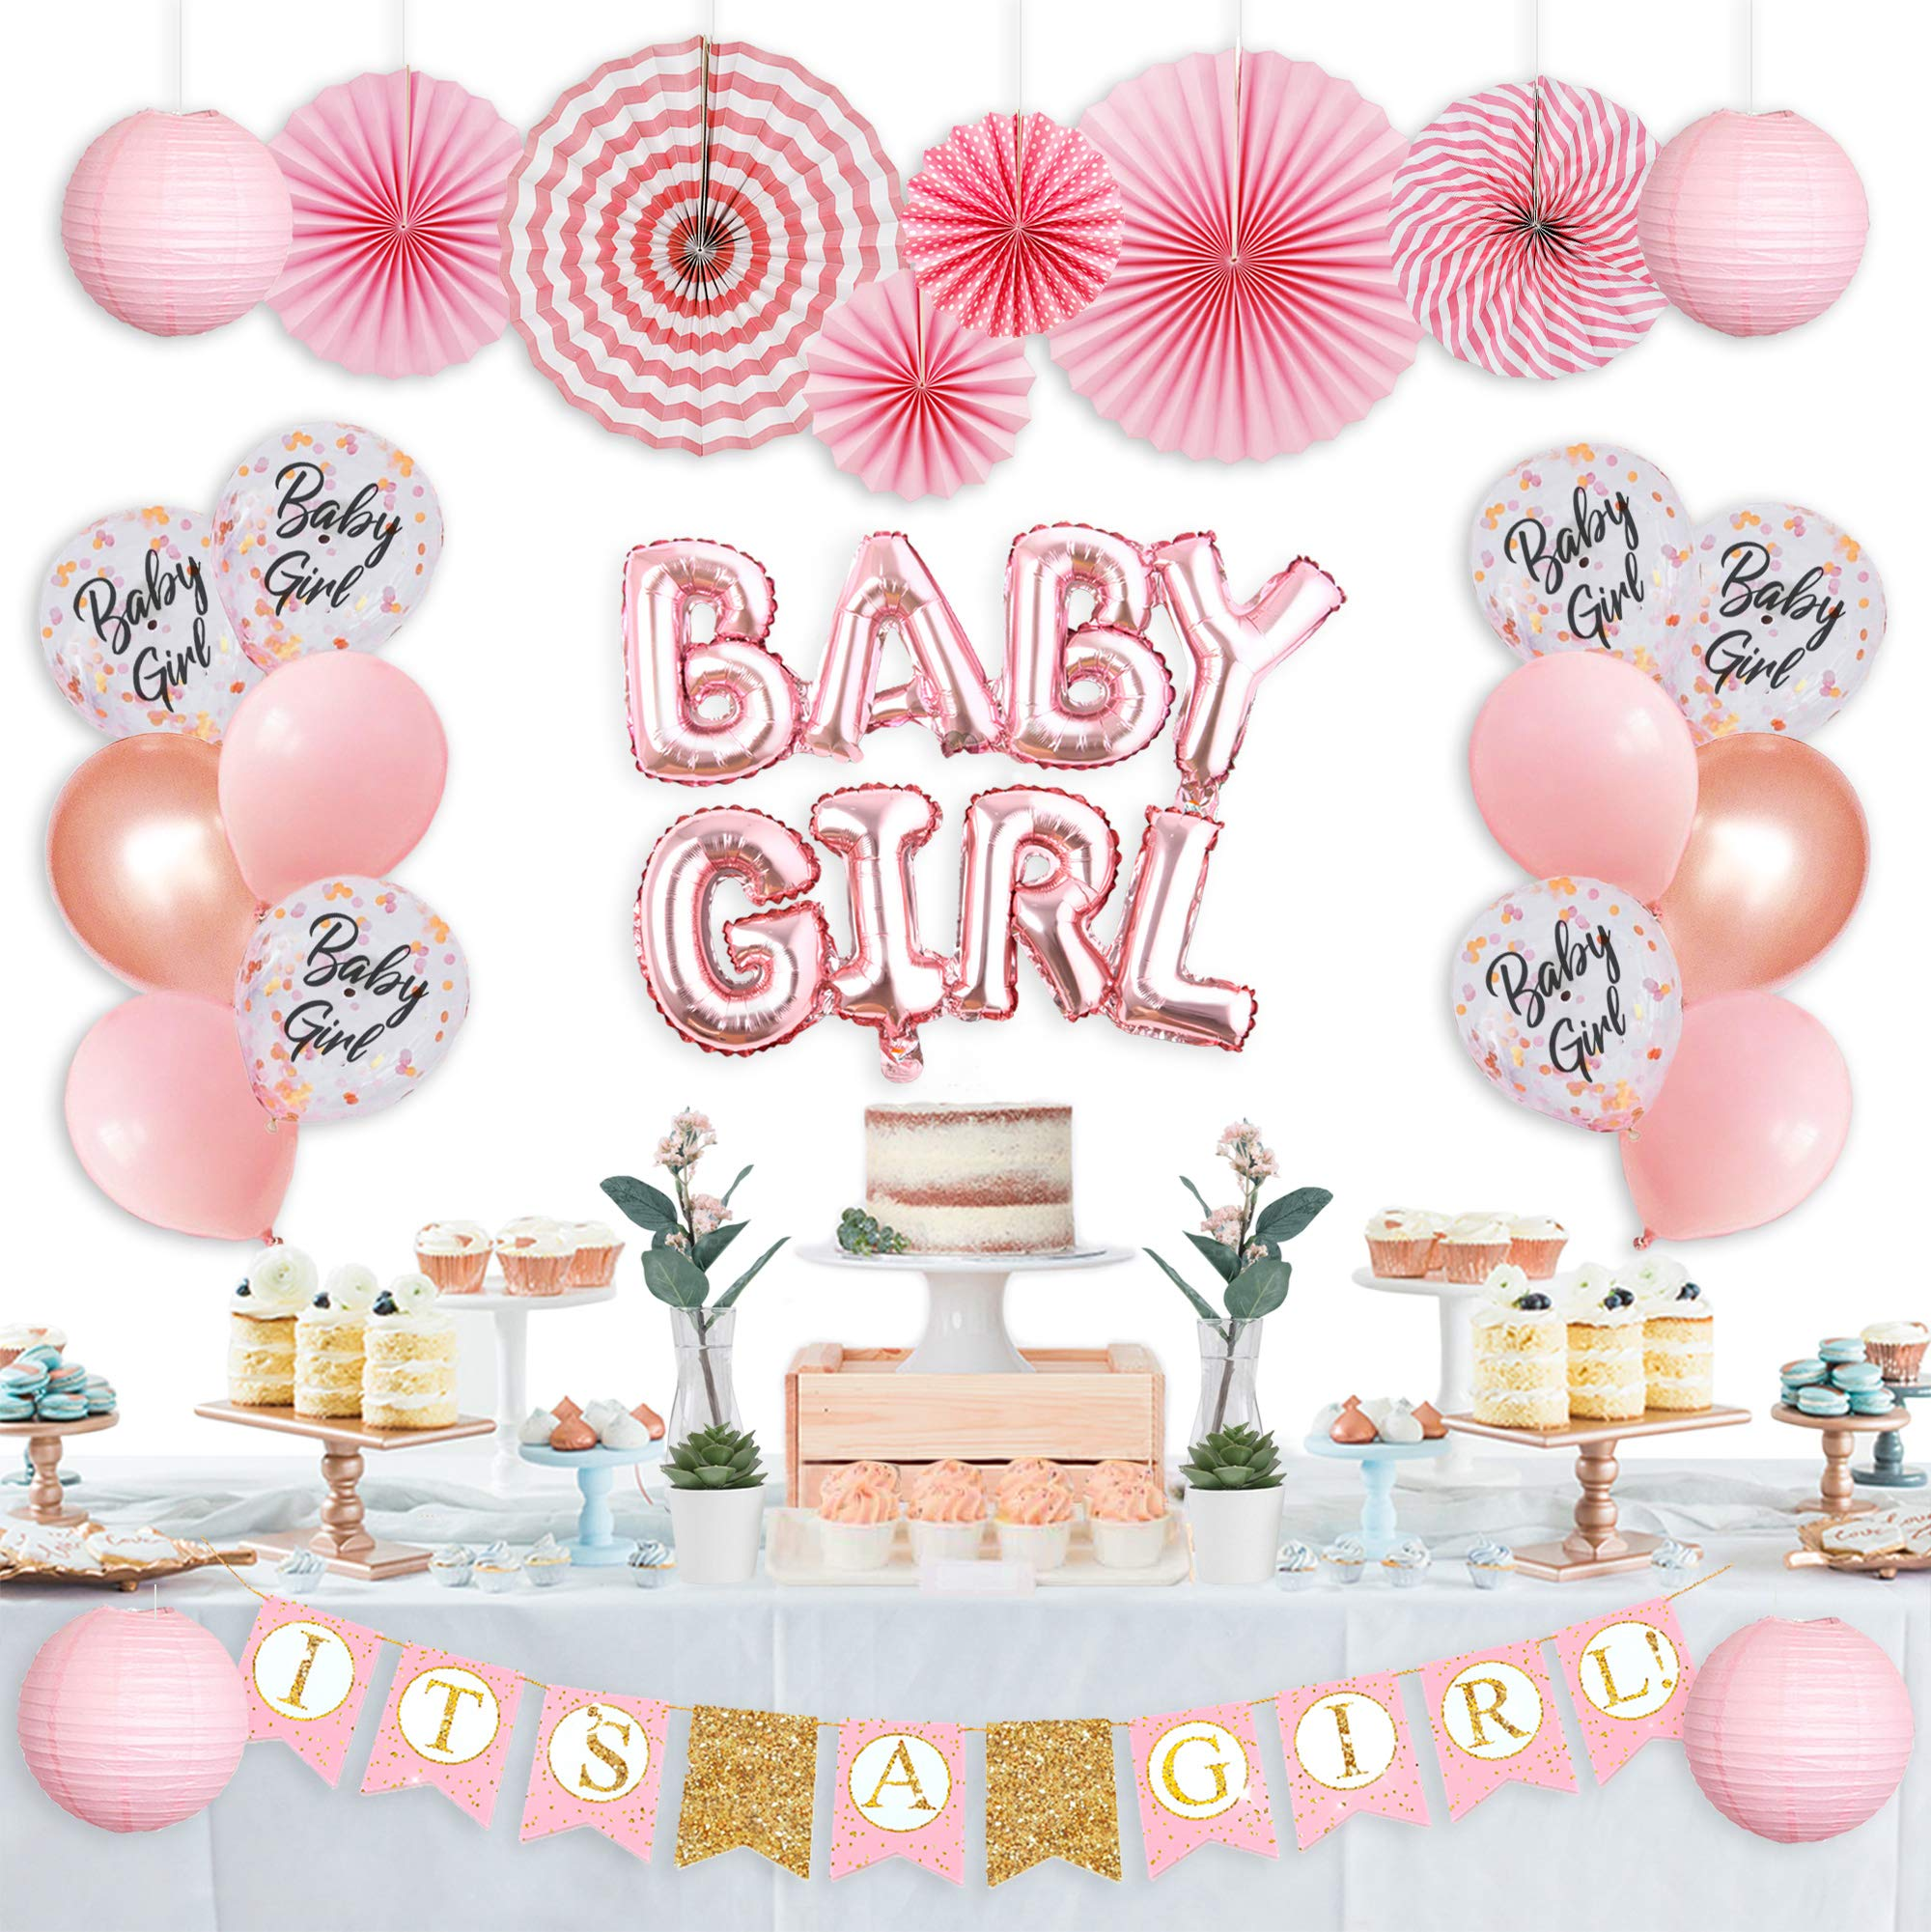 Baby Shower Decorations for Girl, Its A Girl Baby Shower Decorations, Gender Reveal, It's A Girl Letter Banner, Foil Letter Baby Girl Balloons Paper Lanterns Paper Fans I Baby Girl Decorations Set by MR. TARO by MR.TARO